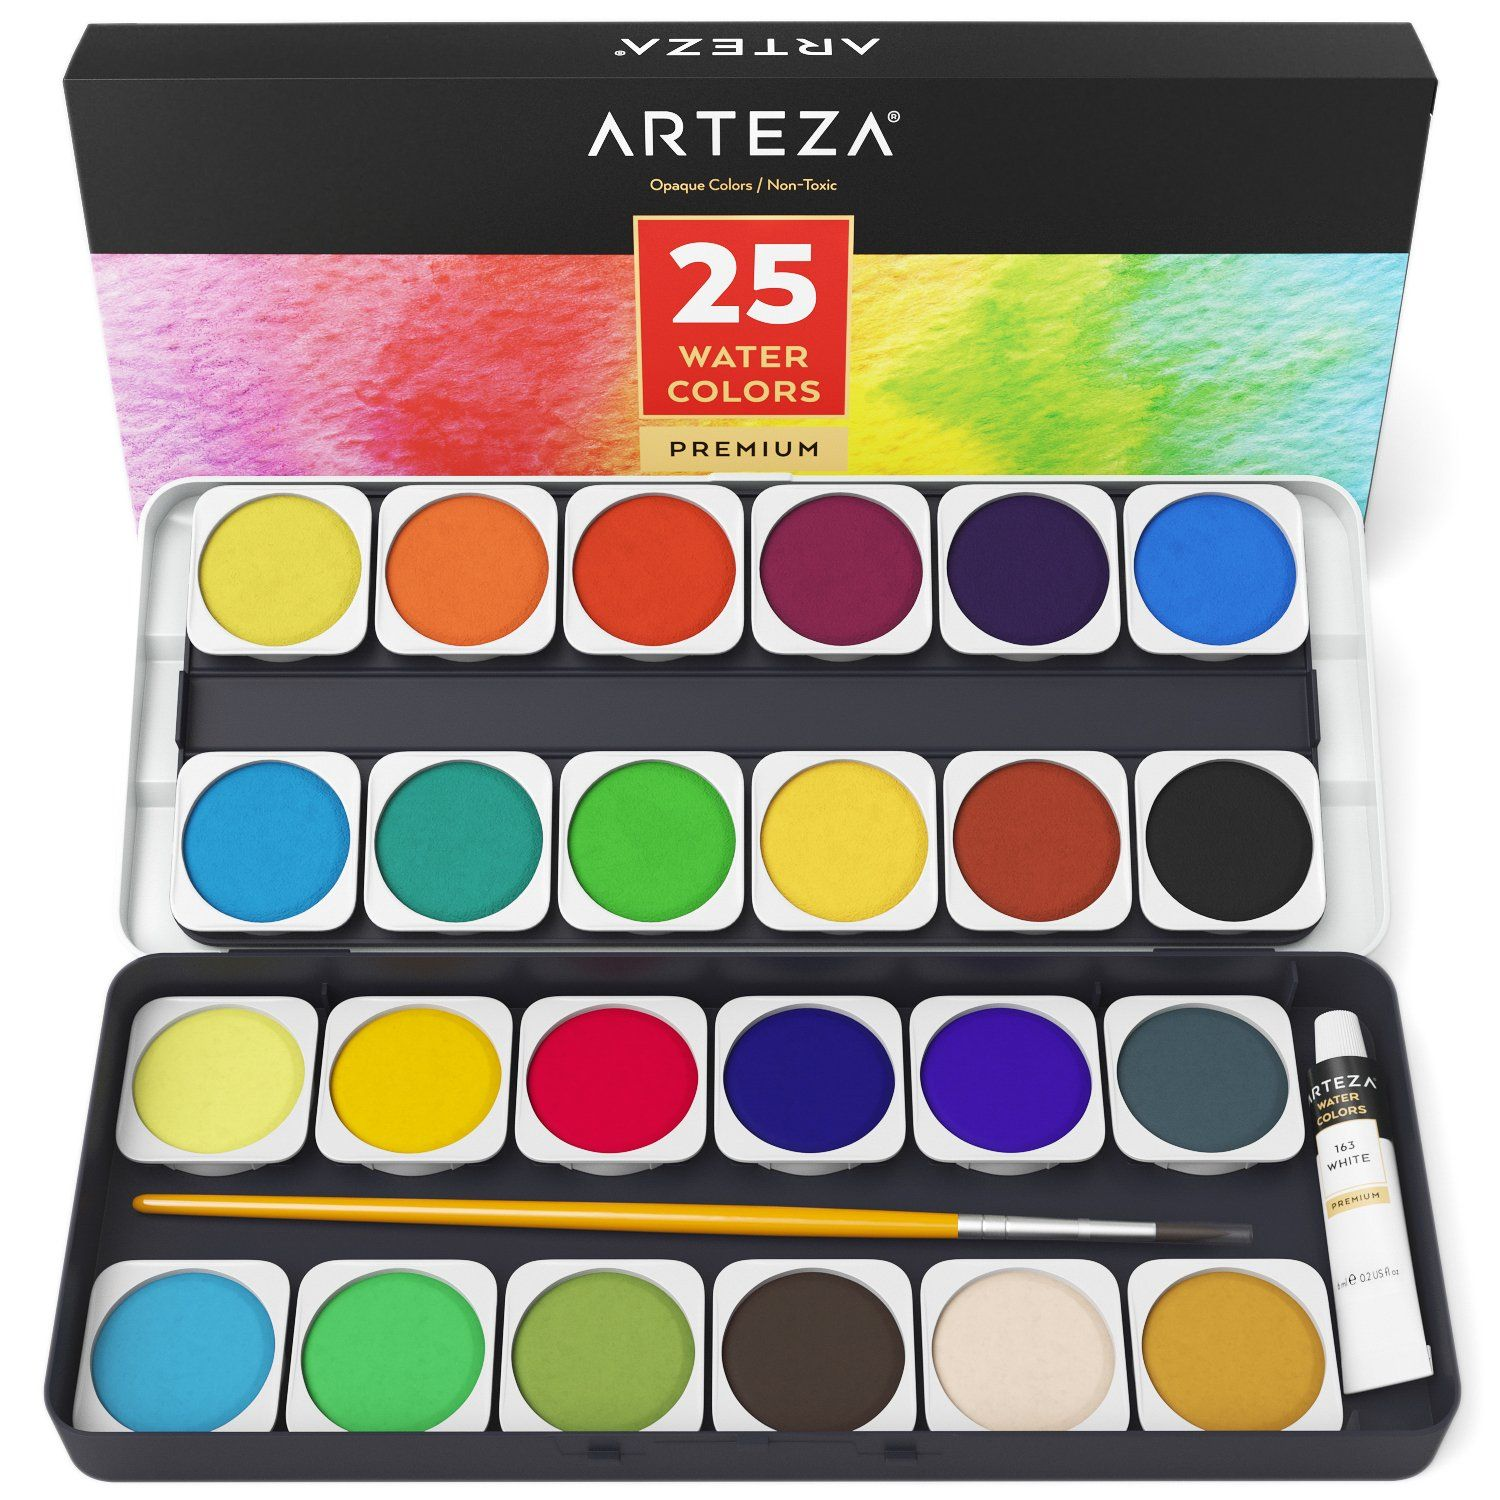 Watercolor Premium Artist Paint Opaque Colors In Pans Set Of 25